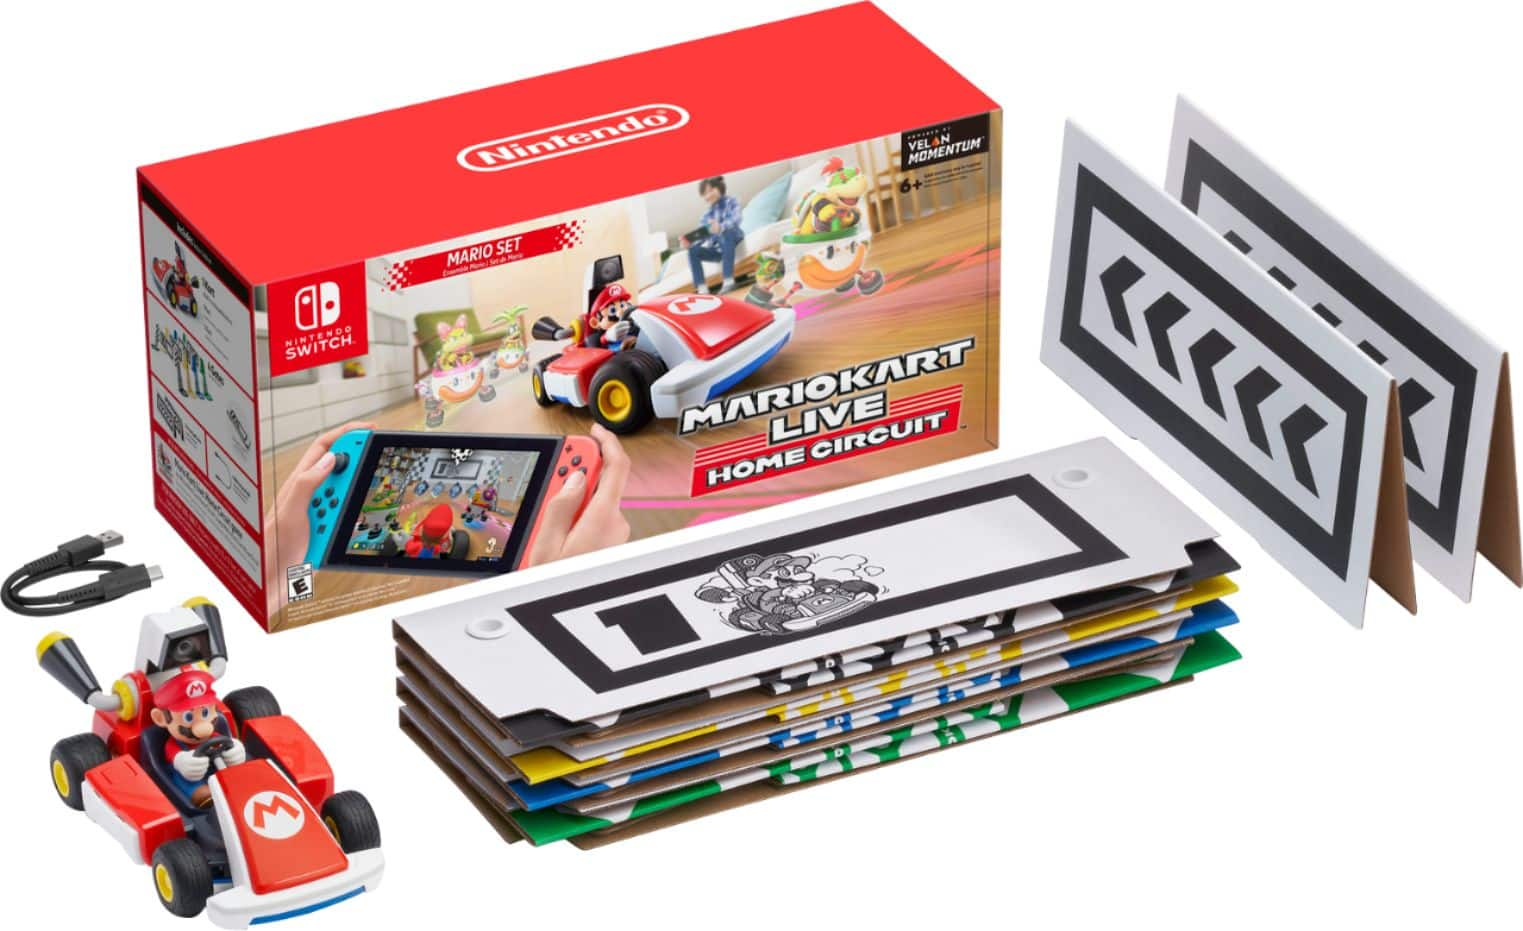 Mario Kart Live Home Circuit BACK IN STOCK $99.99